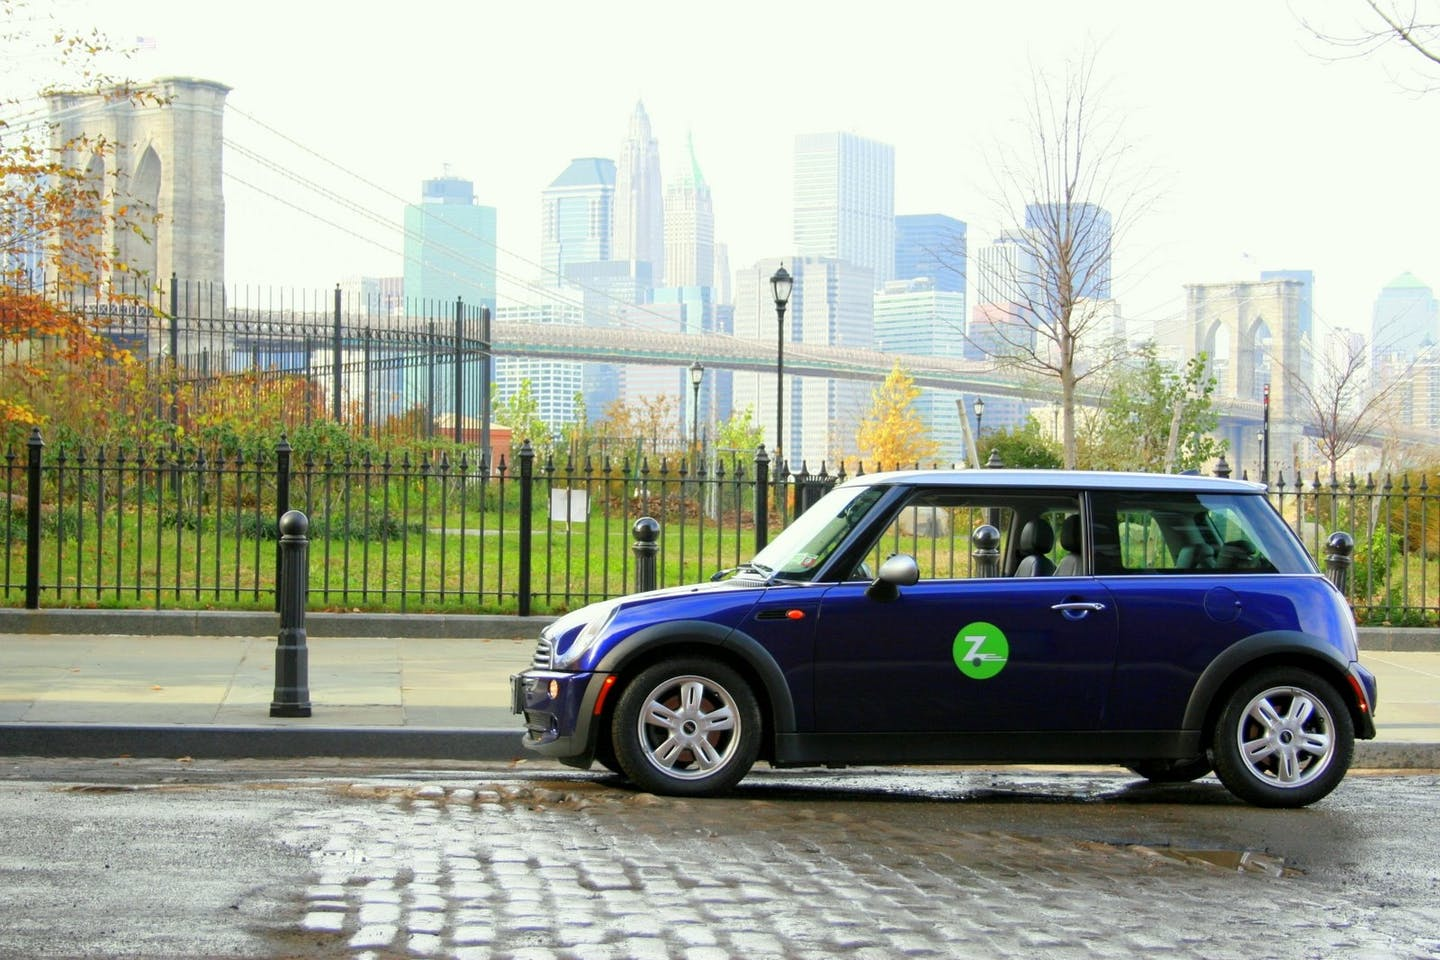 Zipcar as example of sustainable business